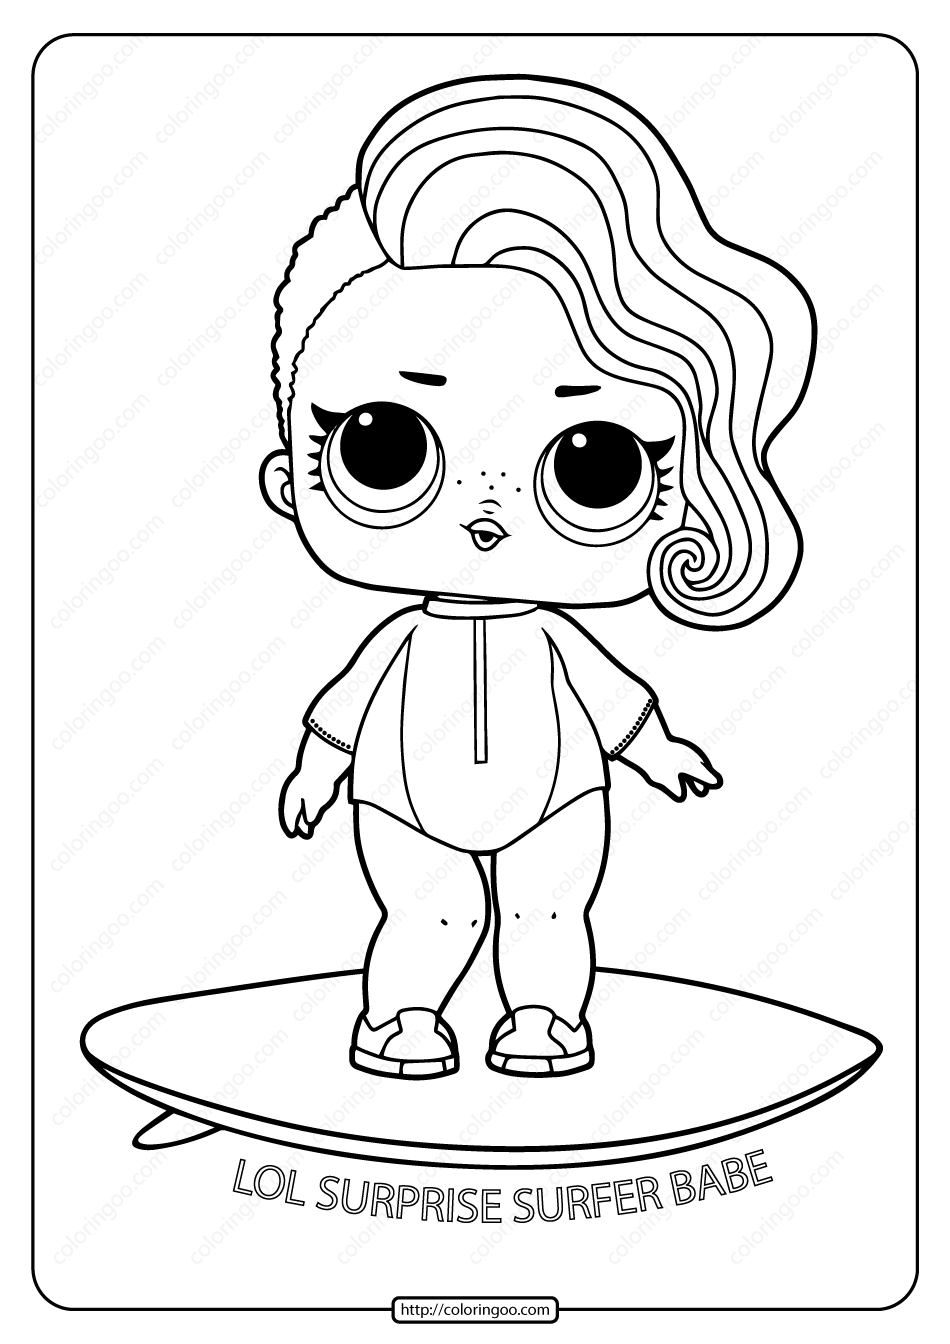 Printable Lol Surprise Surfer Babe Coloring Page